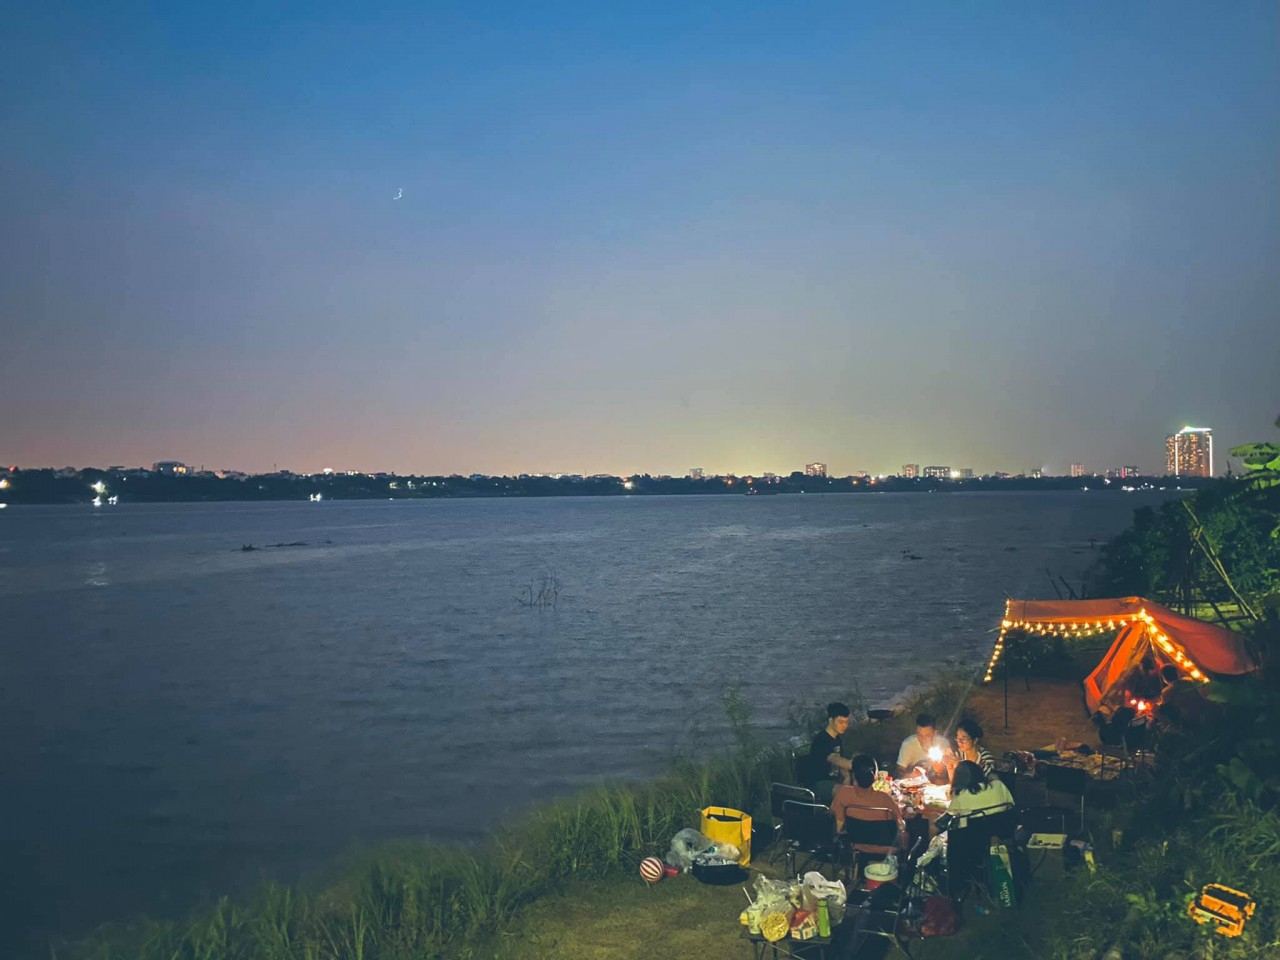 Four Outdoor Activities to (Safely) Celebrate Hanoi's Post-Lockdown Life